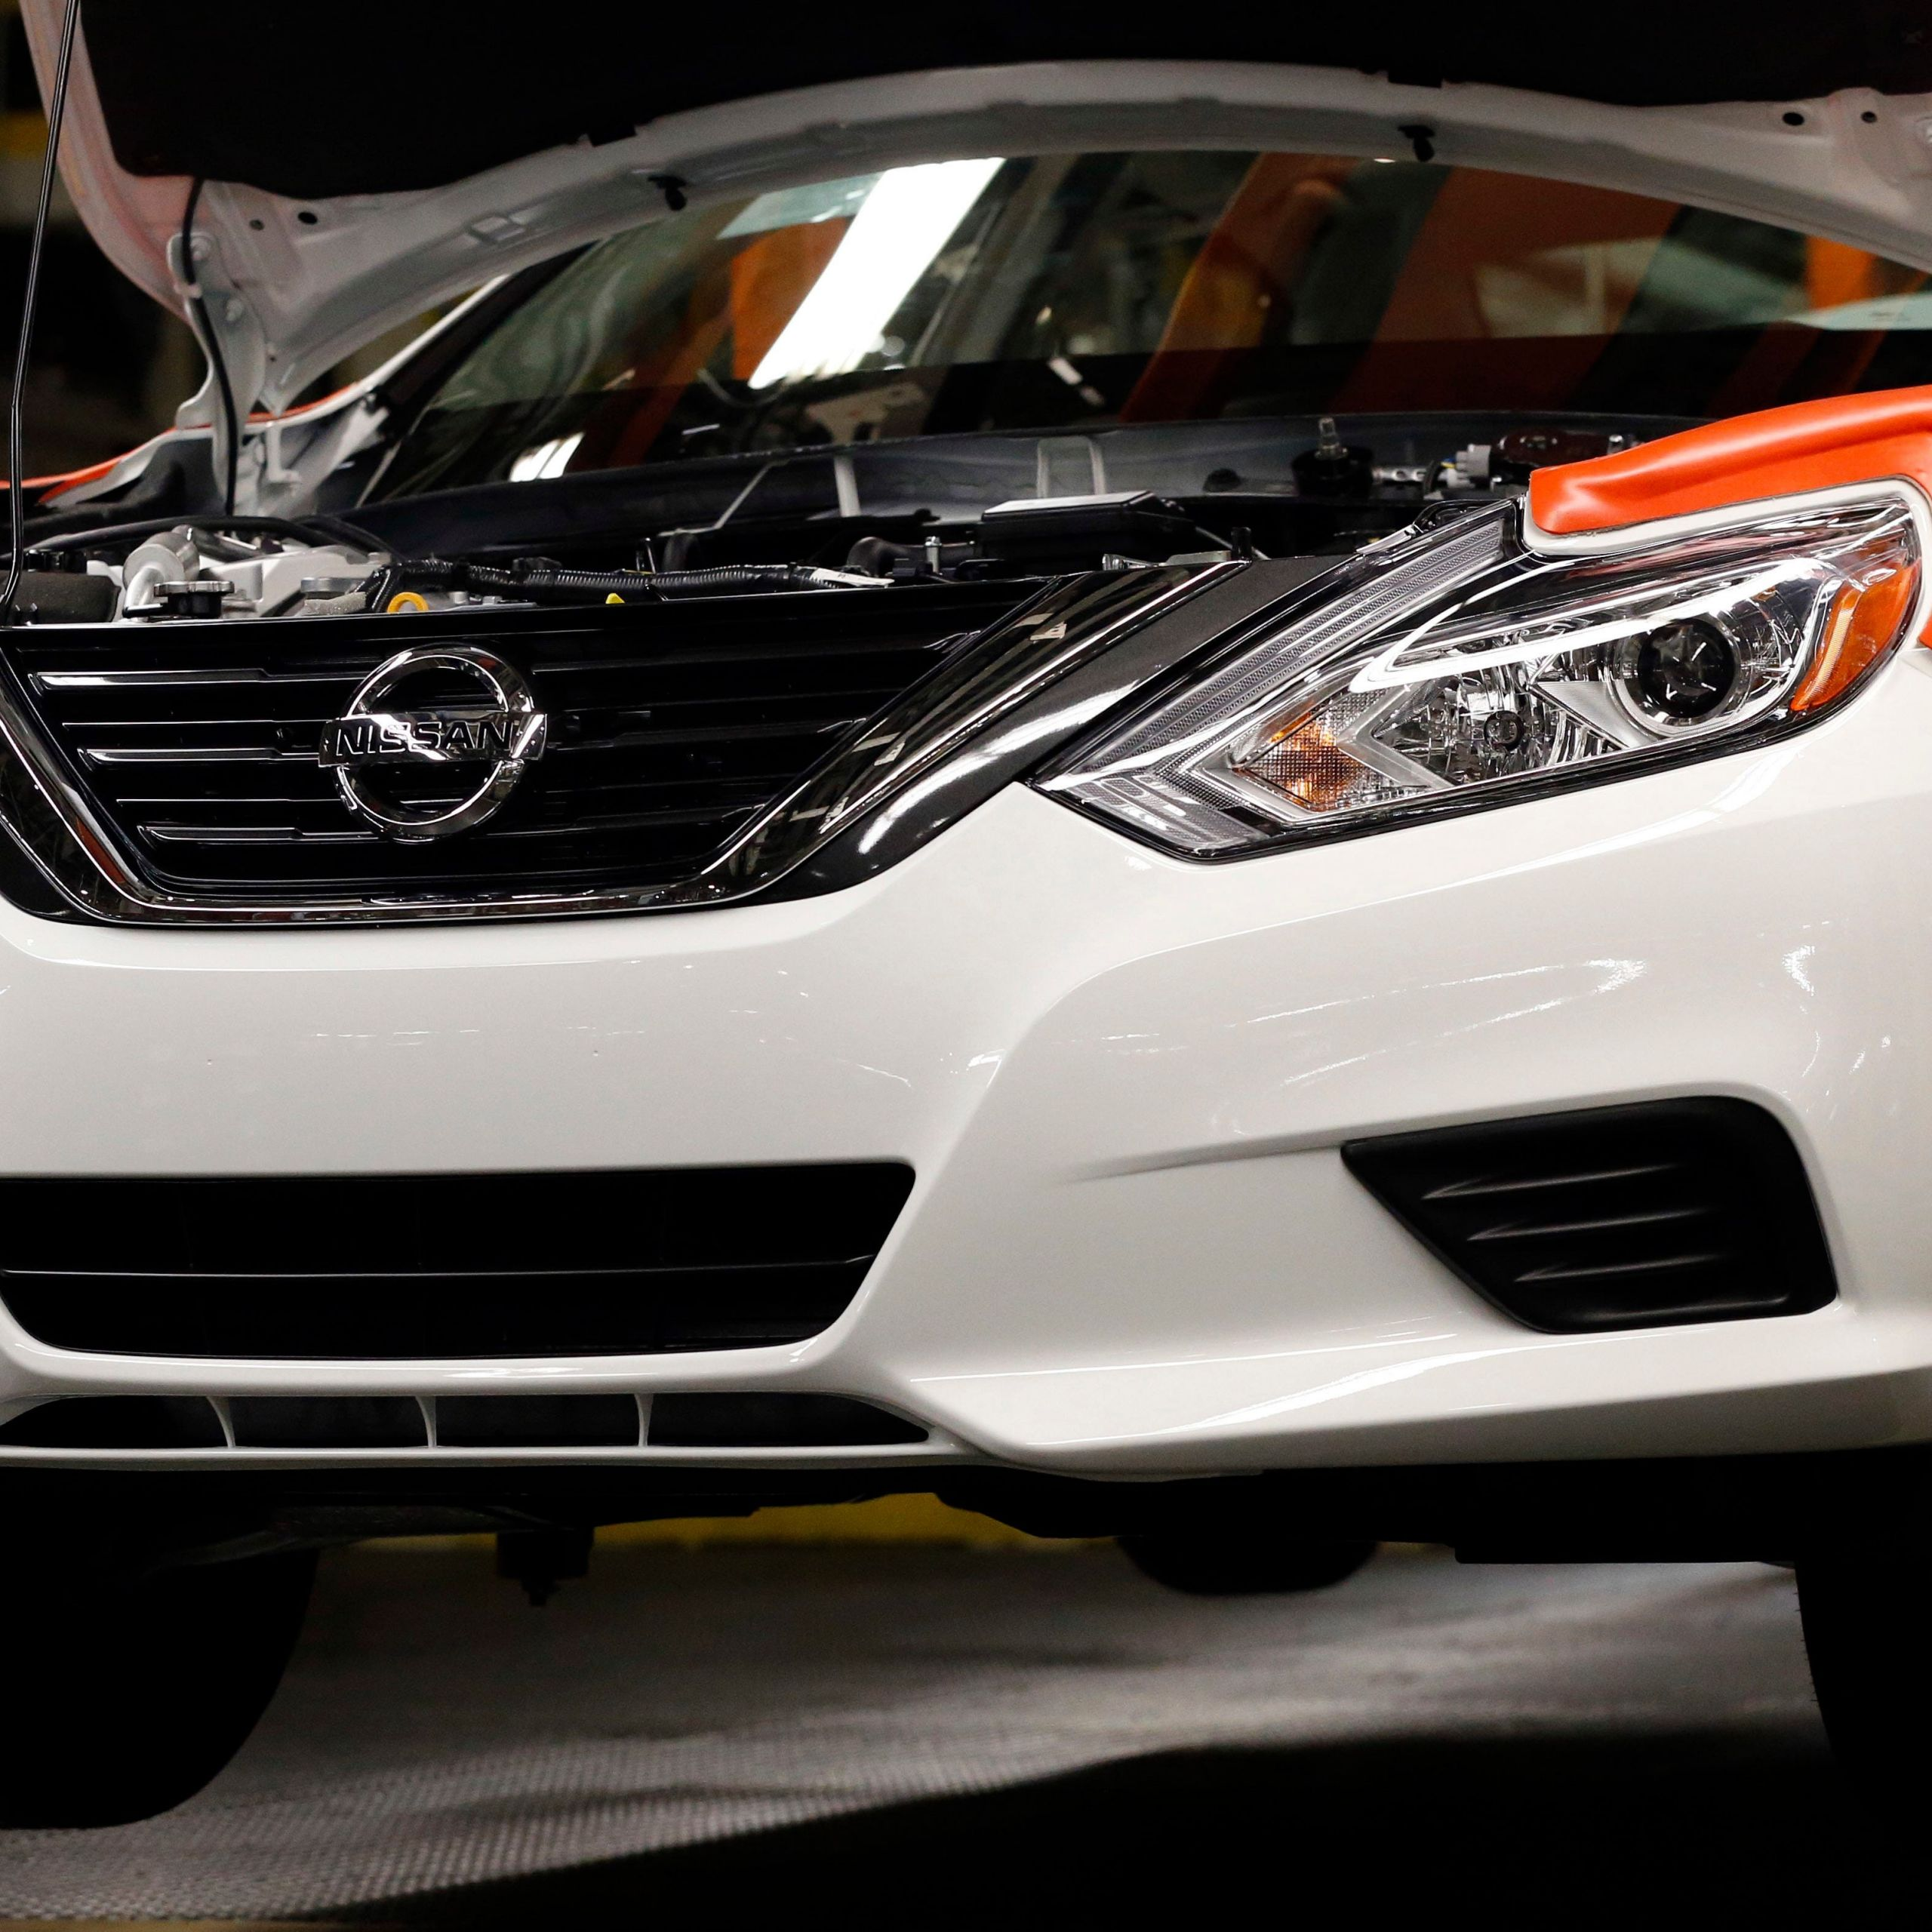 2011 Nissan Altima Luxury Nissan Altima Suspension issue Not A Recall but Nhtsa